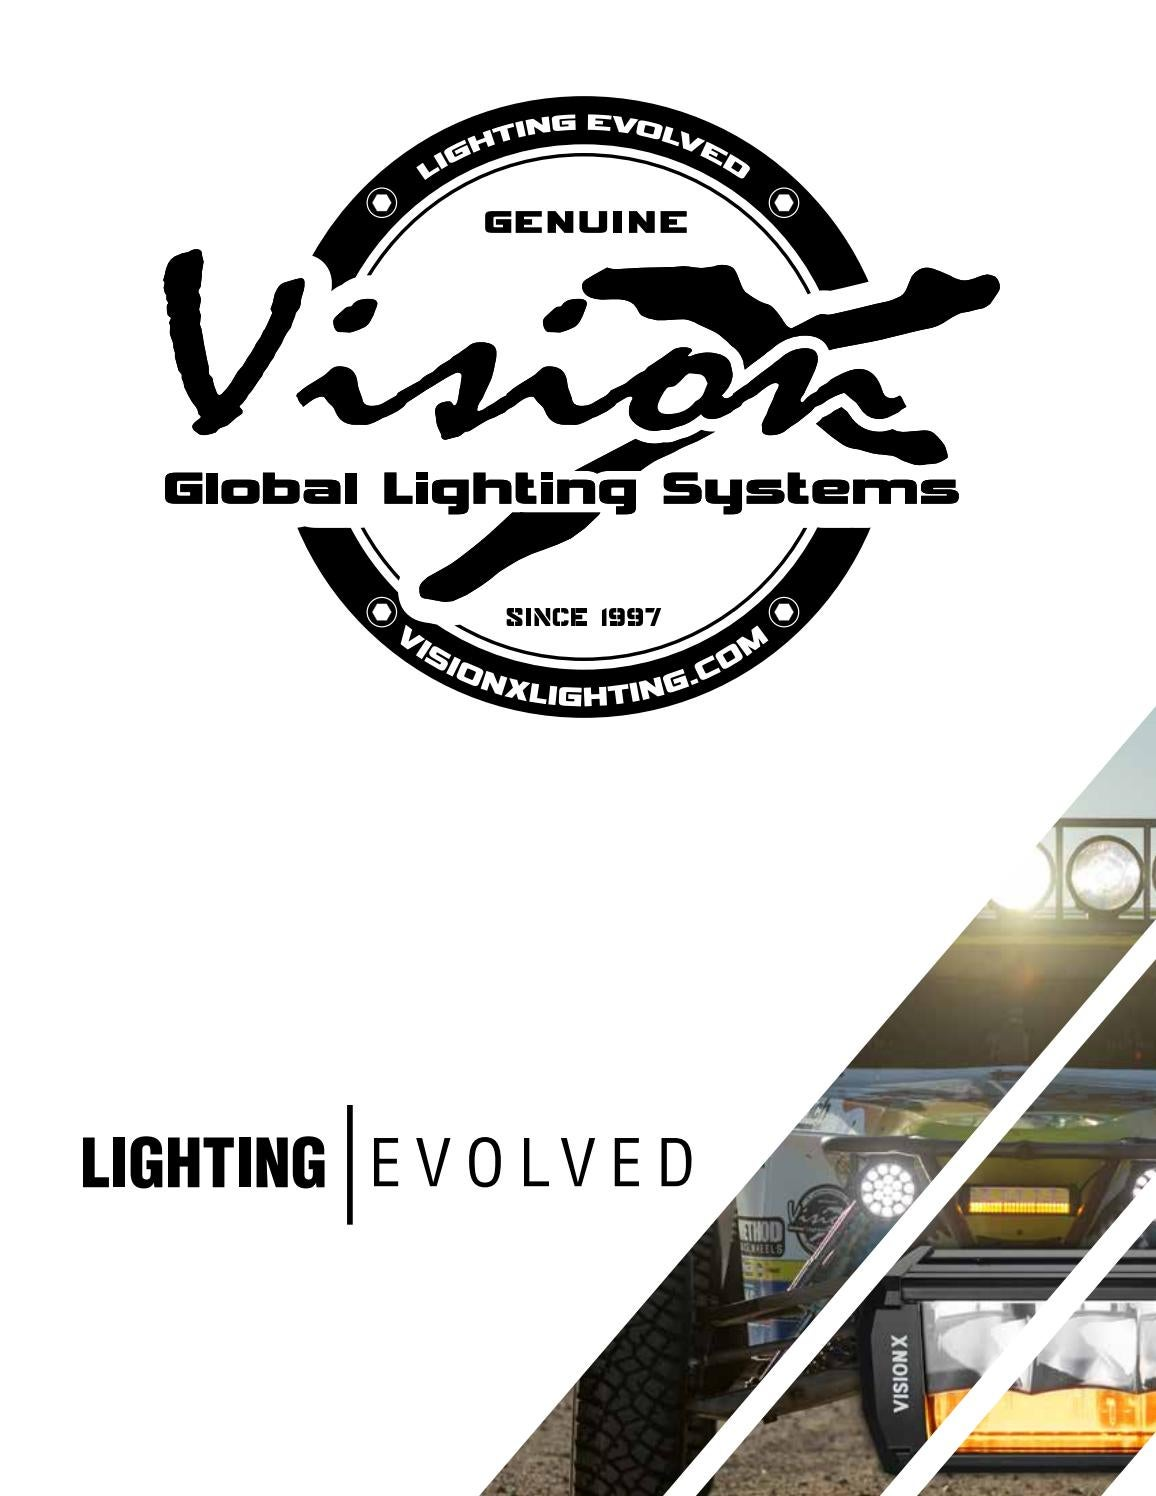 2019 Vision X Automotive Catalog by Vision X Lighting - issuu on amp bypass harness, pony harness, pet harness, alpine stereo harness, cable harness, safety harness, dog harness, electrical harness, obd0 to obd1 conversion harness, oxygen sensor extension harness, engine harness, battery harness, maxi-seal harness, nakamichi harness, fall protection harness, suspension harness, radio harness,